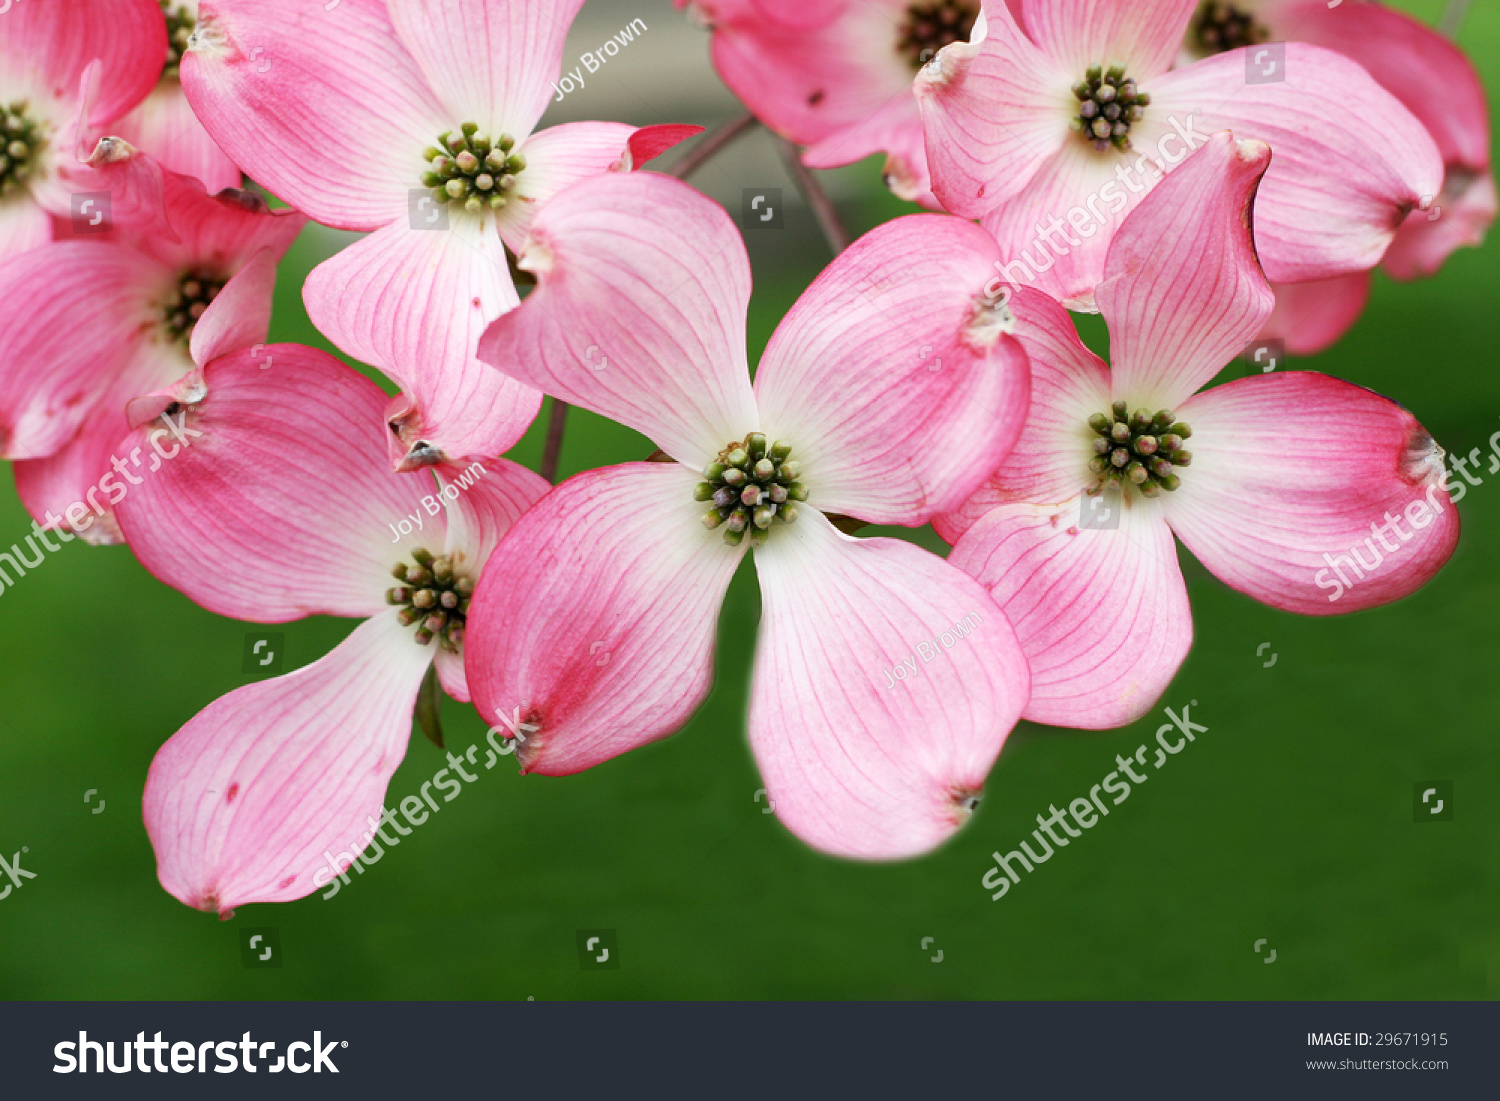 Pink Dogwood Tree Flowers Stock Photo Edit Now 29671915 Shutterstock